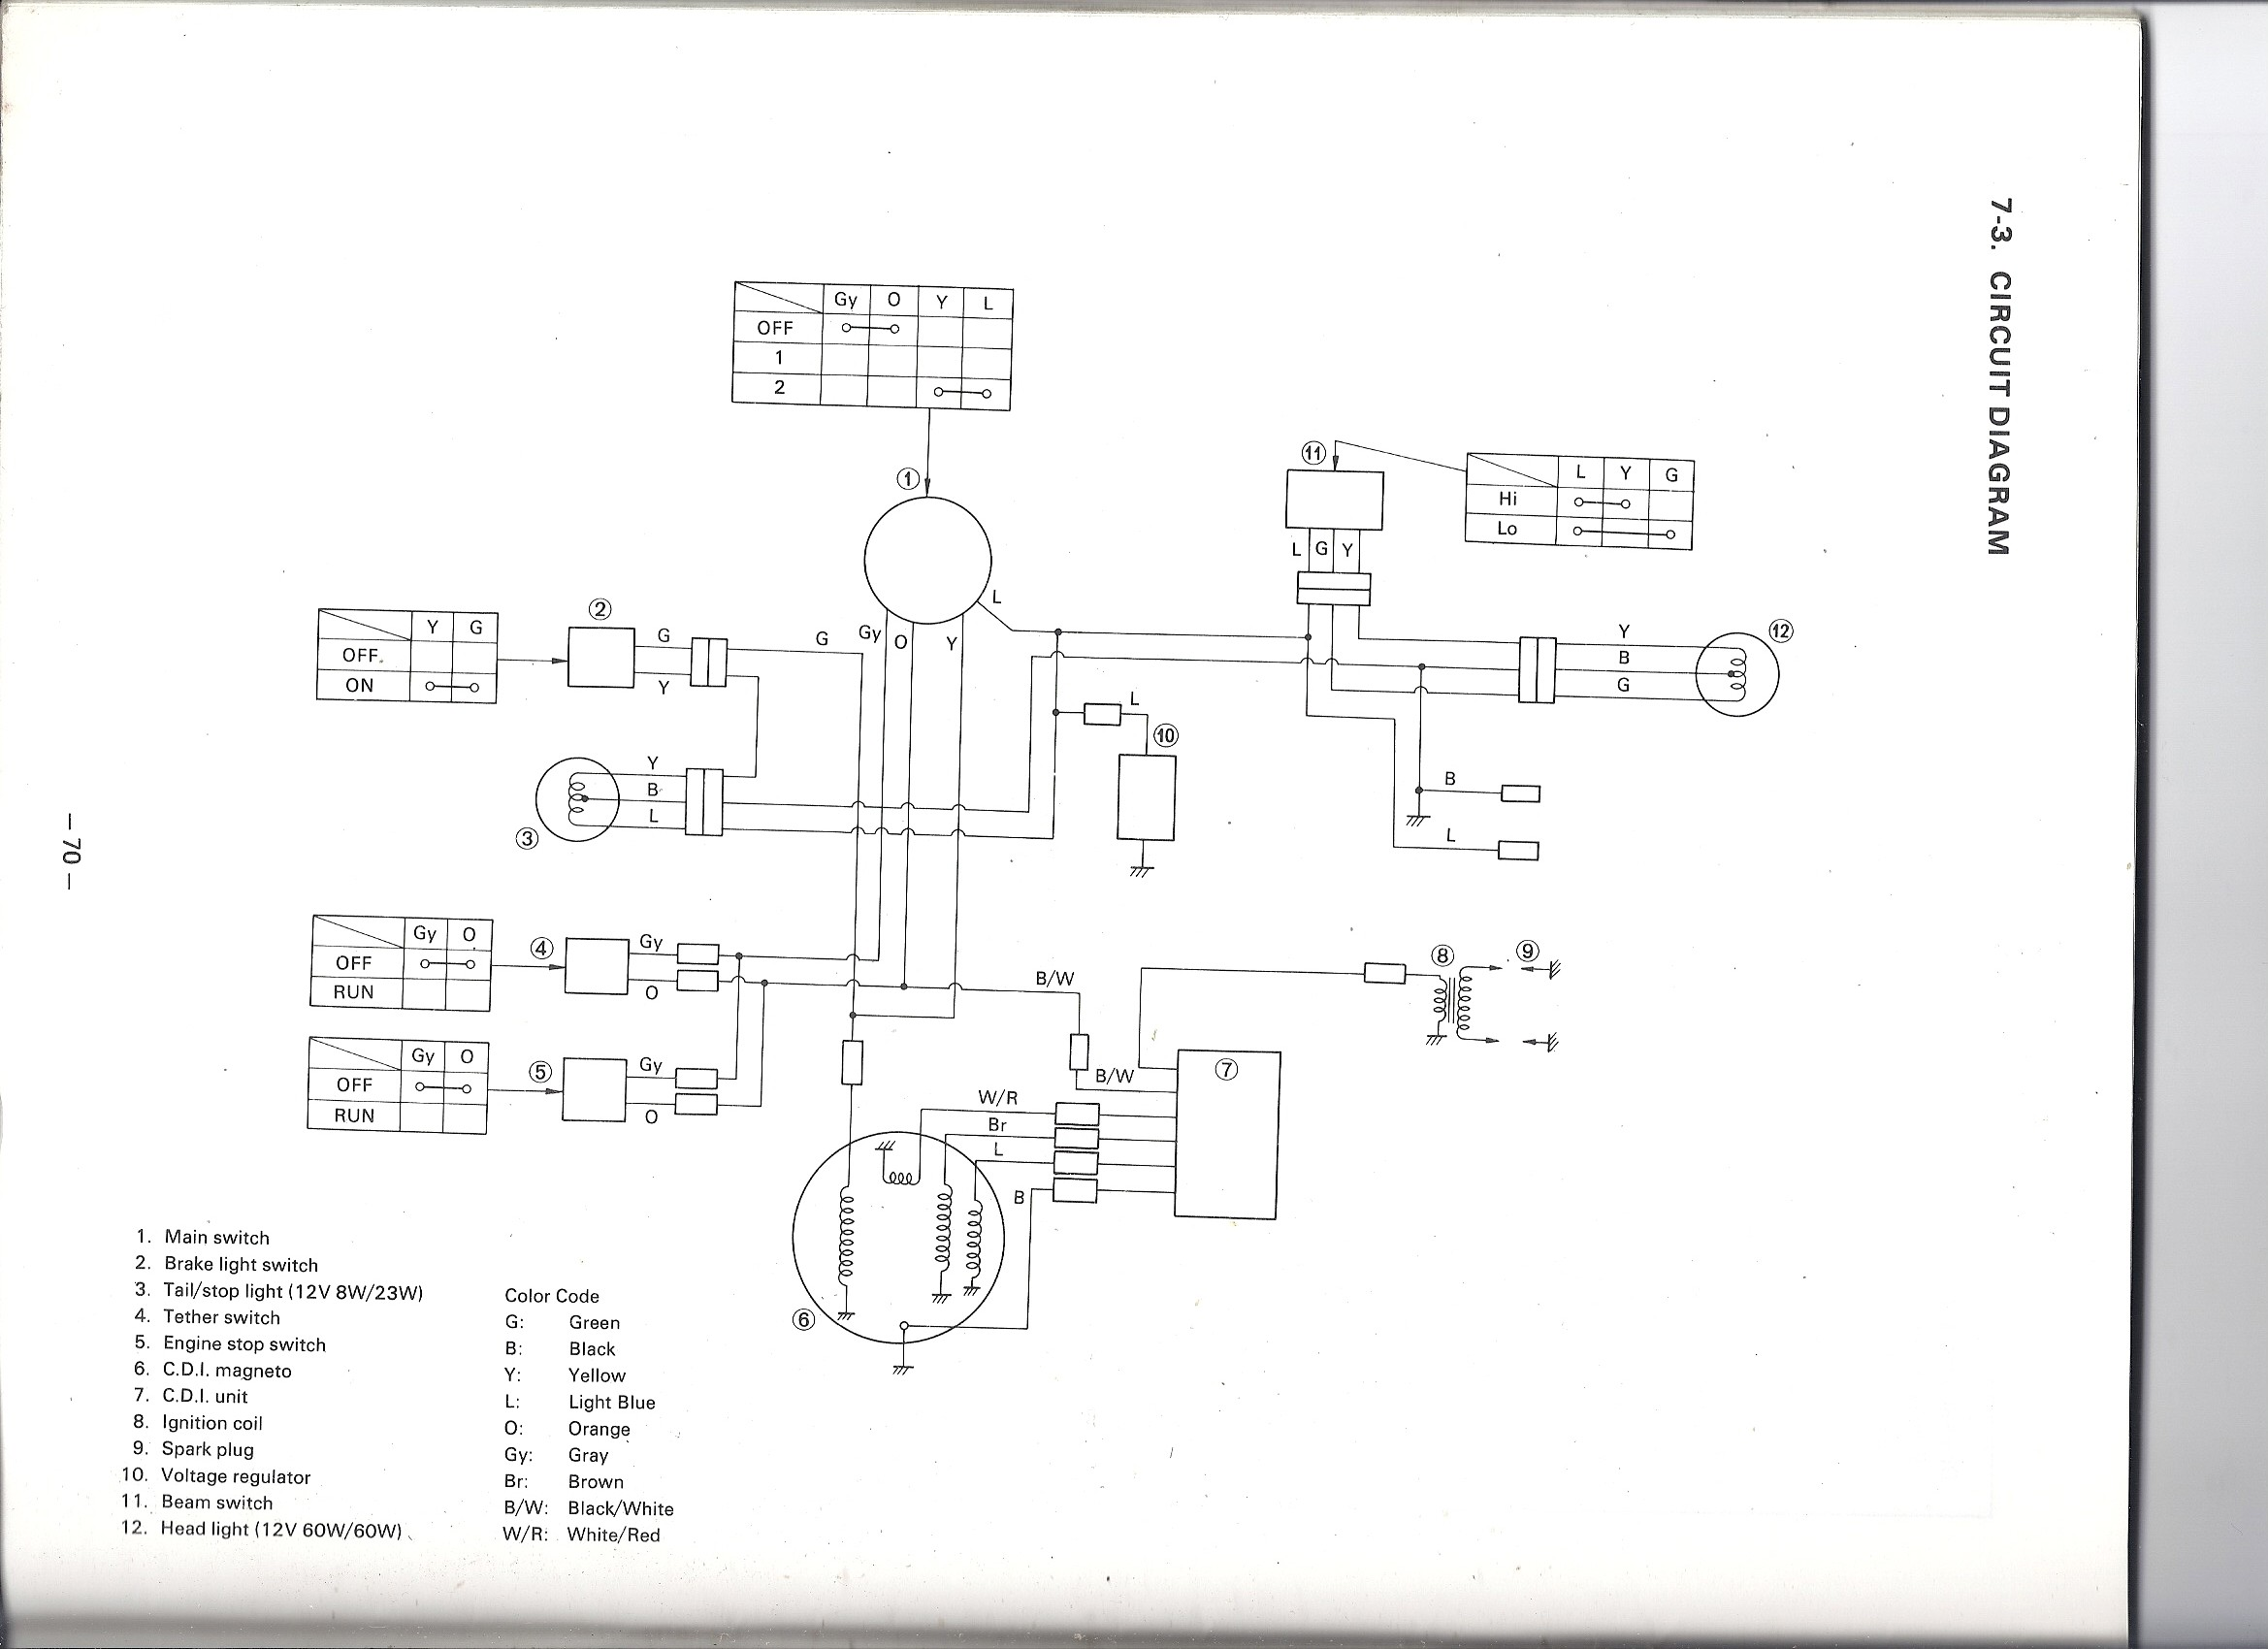 1979 enticer question having trouble logging in on 2smoke yamaha enticer 250 wiring diagram at love-stories.co